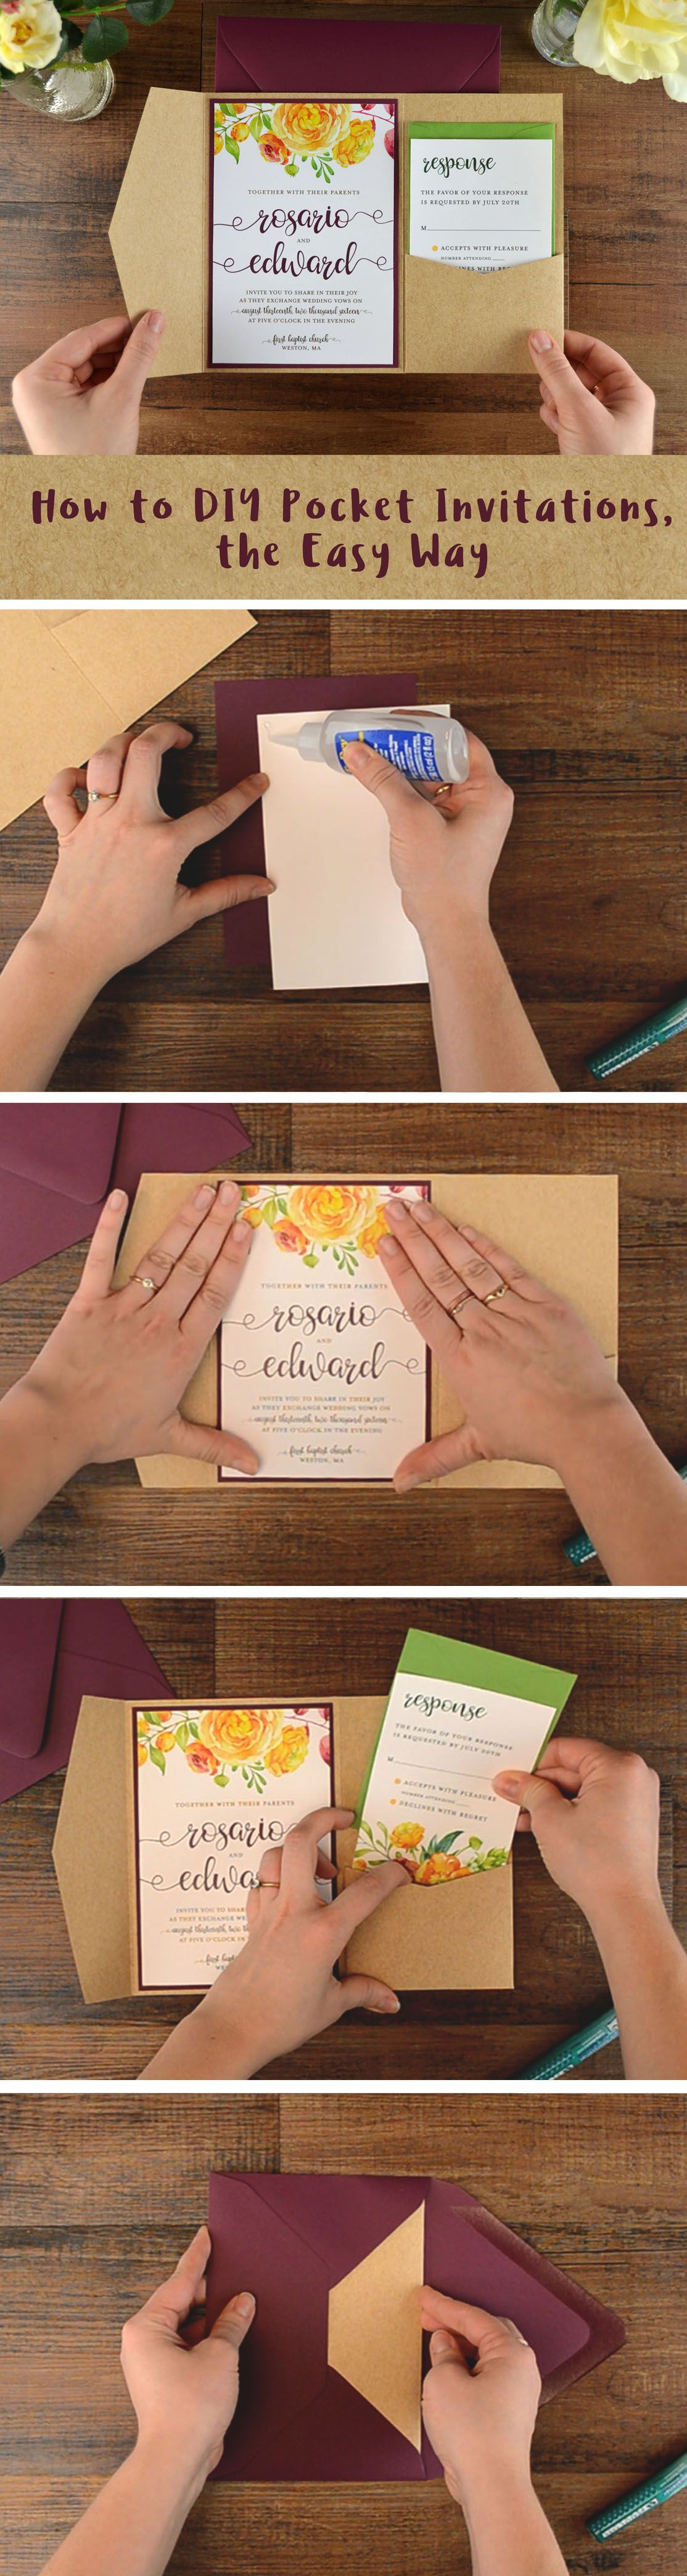 How to DIY Pocket Invitations, the Easy Way Cheap